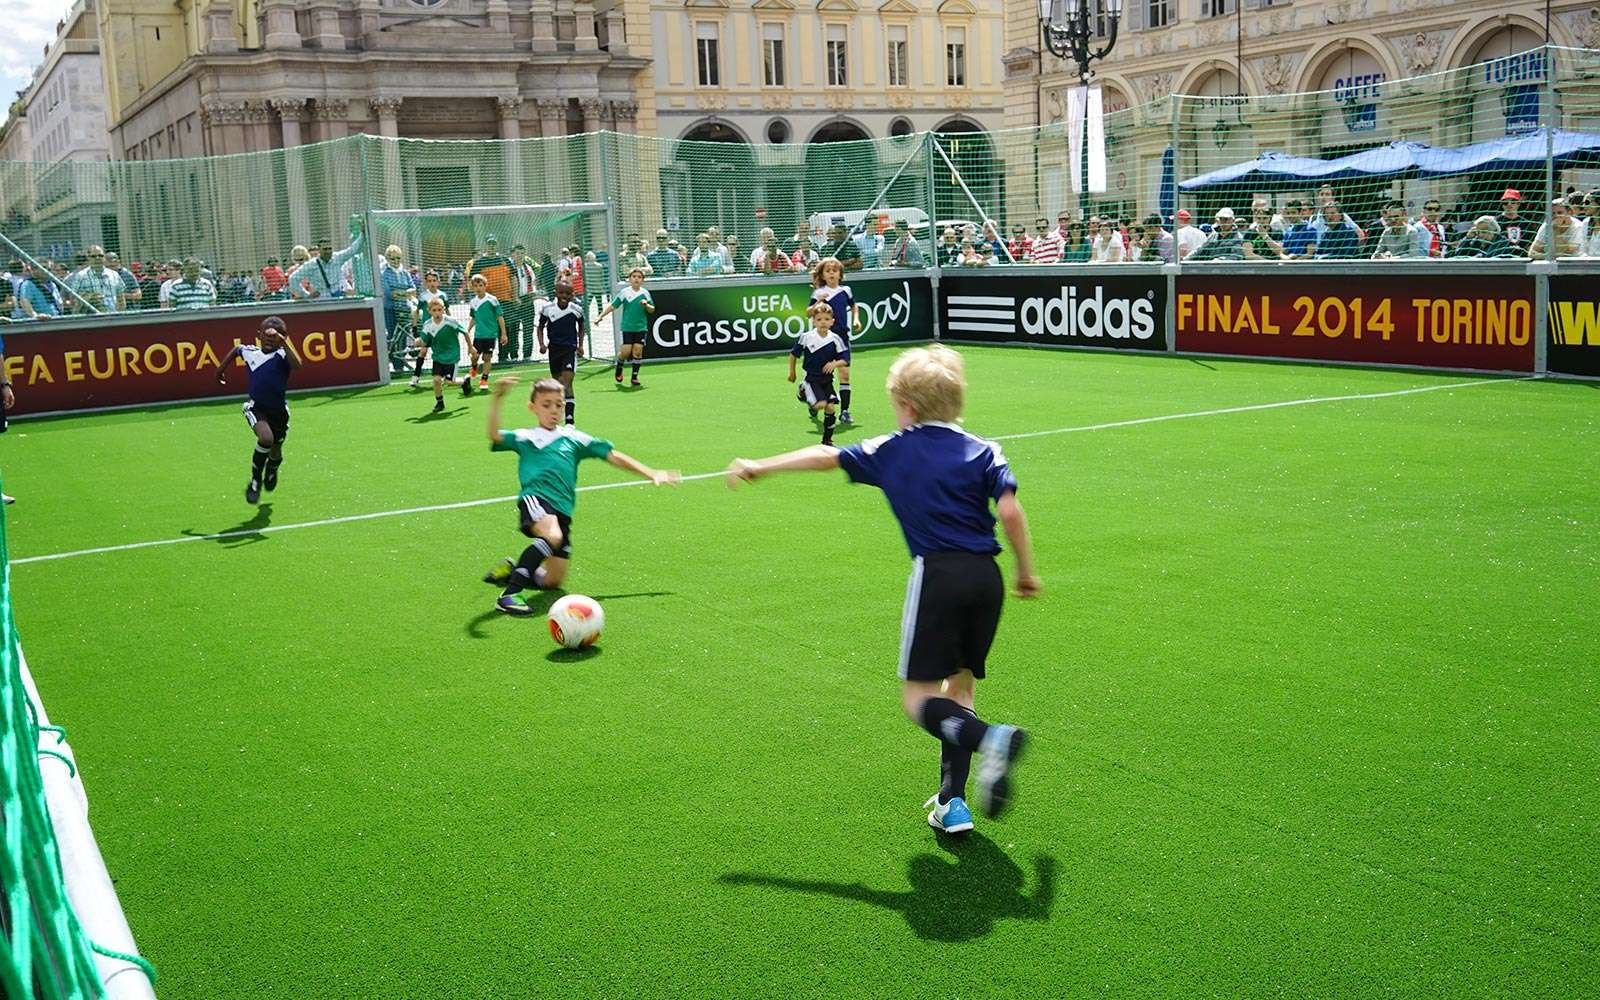 UEFA Grassroots Rebound board pitch